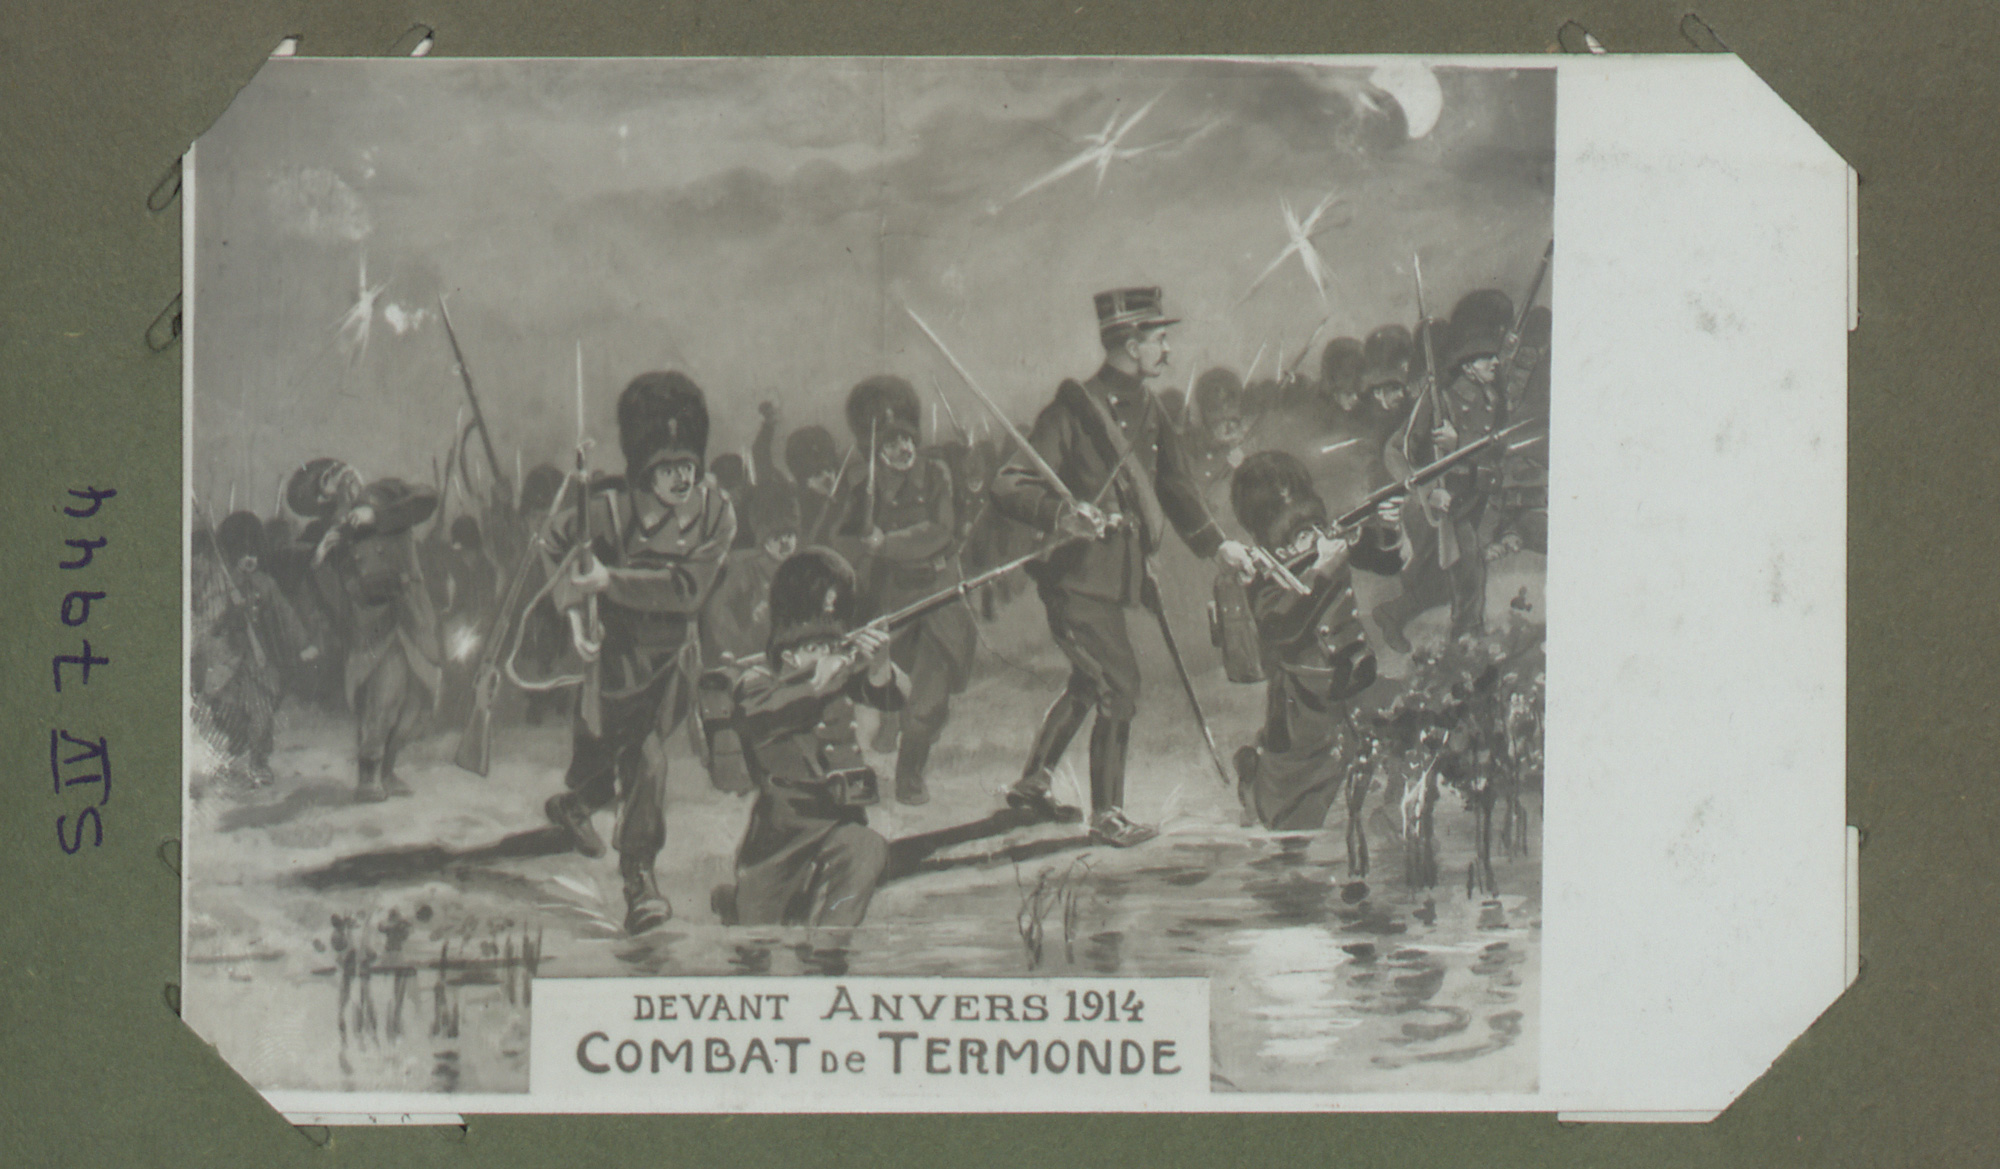 Postcard showing soldiers fighting in the Belgian city of Dendermonde. When the German army invaded Dendermonde in 1914, about 50% of homes were destroyed.